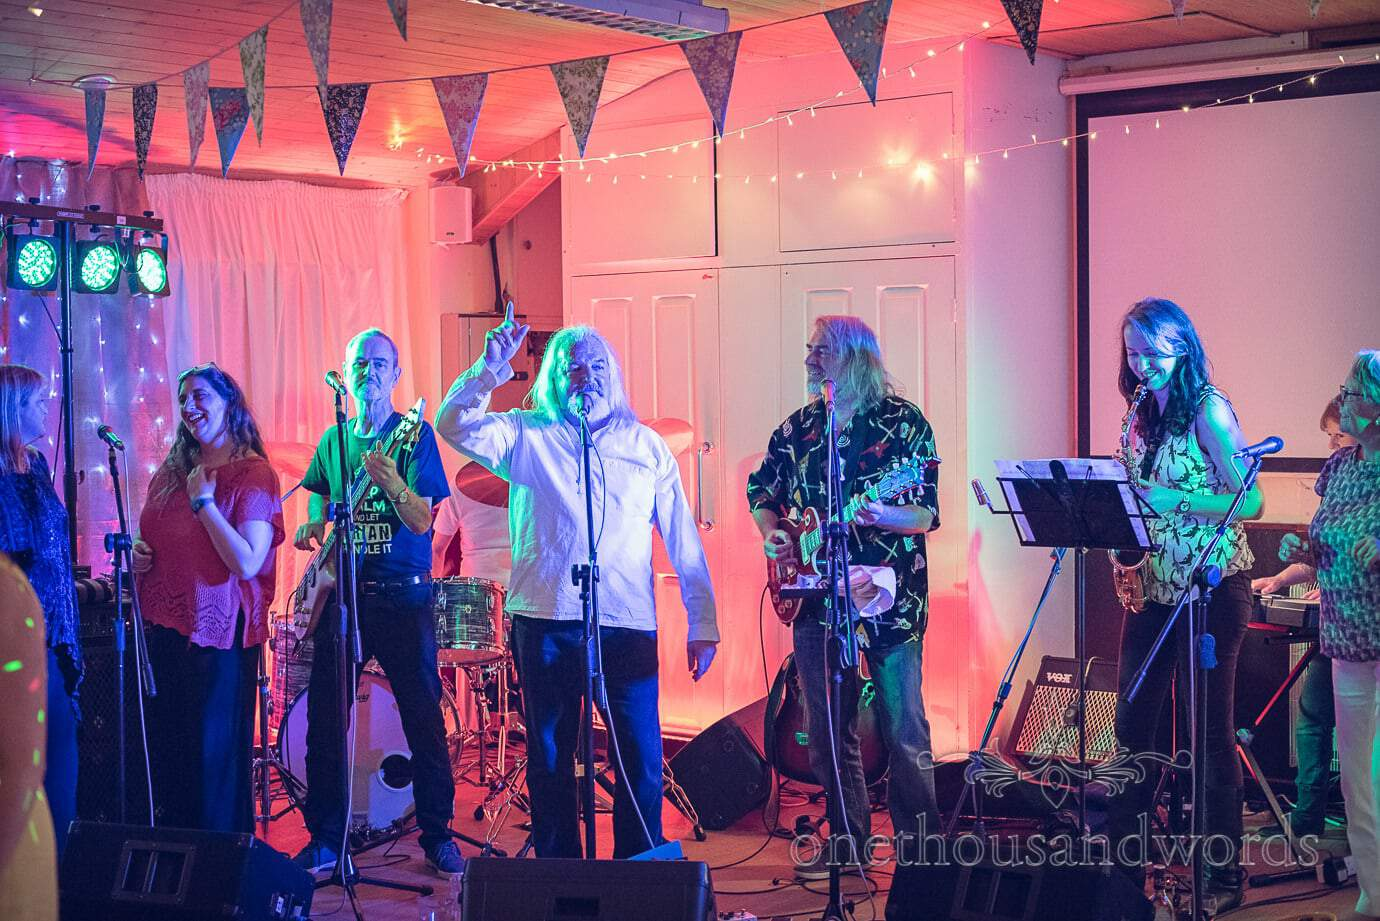 The Reptiles band play Wareham Rugby Club wedding with disco lighting and bunting